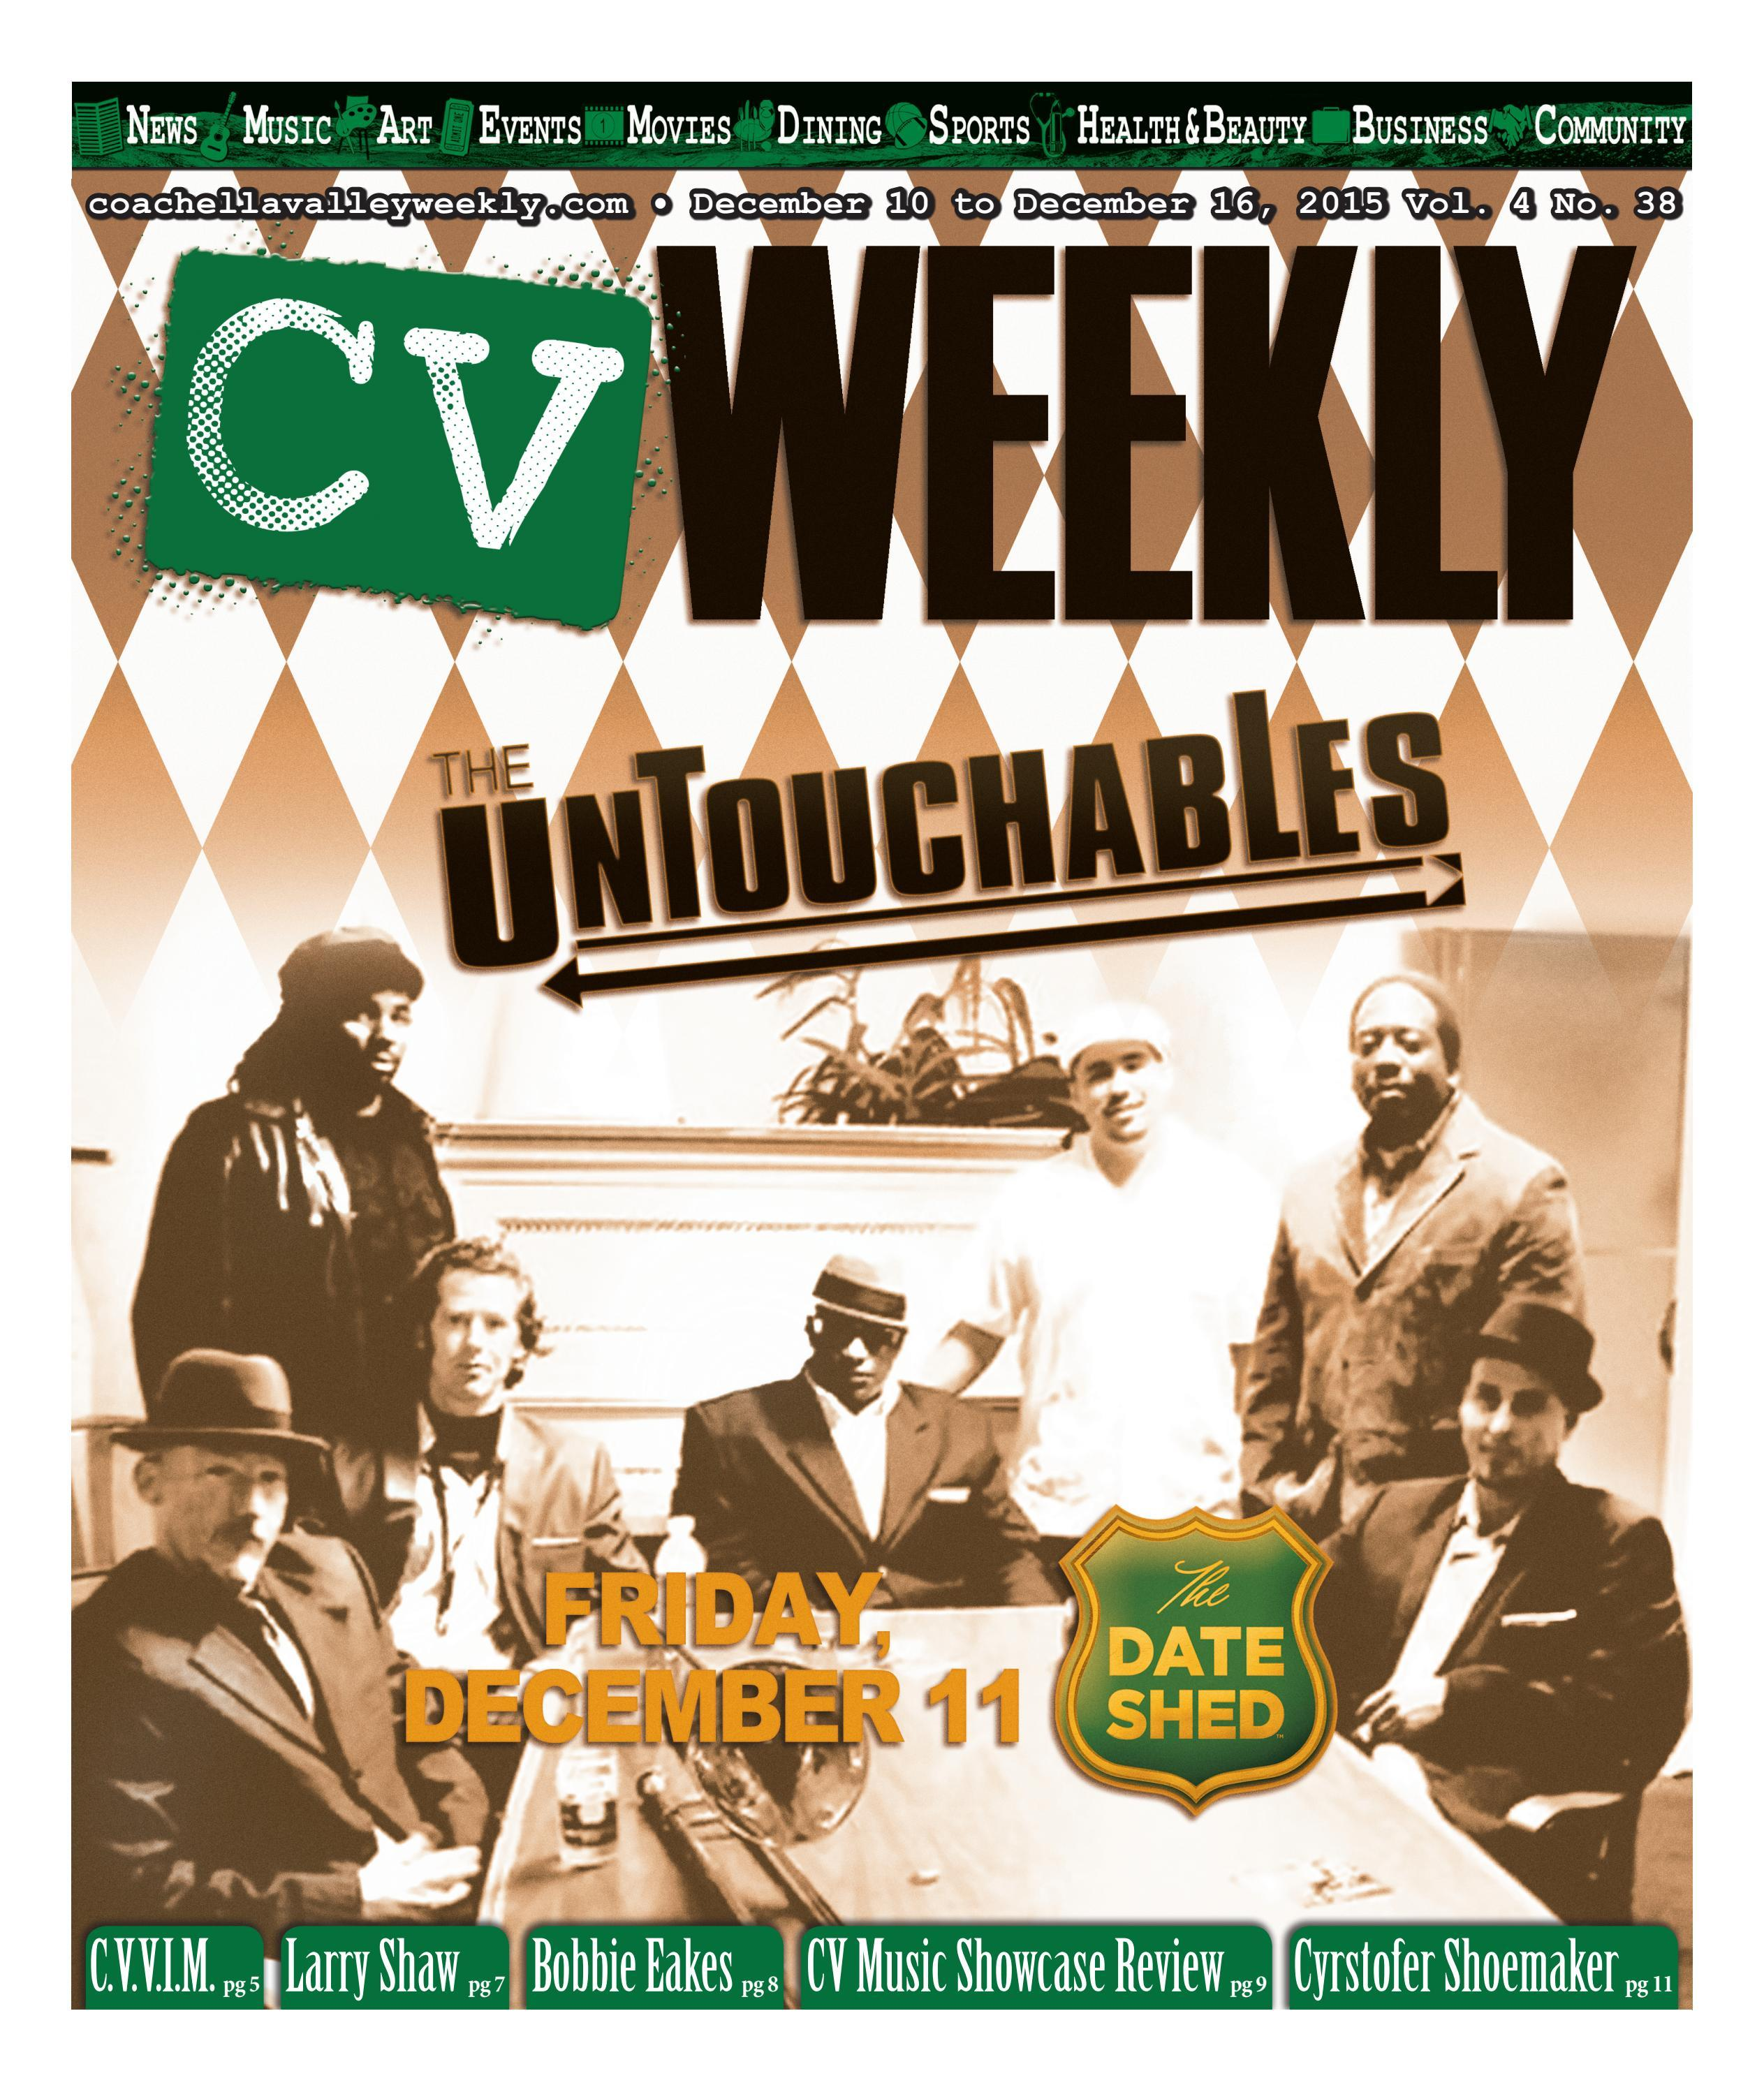 Coachella Valley Weekly - December 10 to December 16, 2015